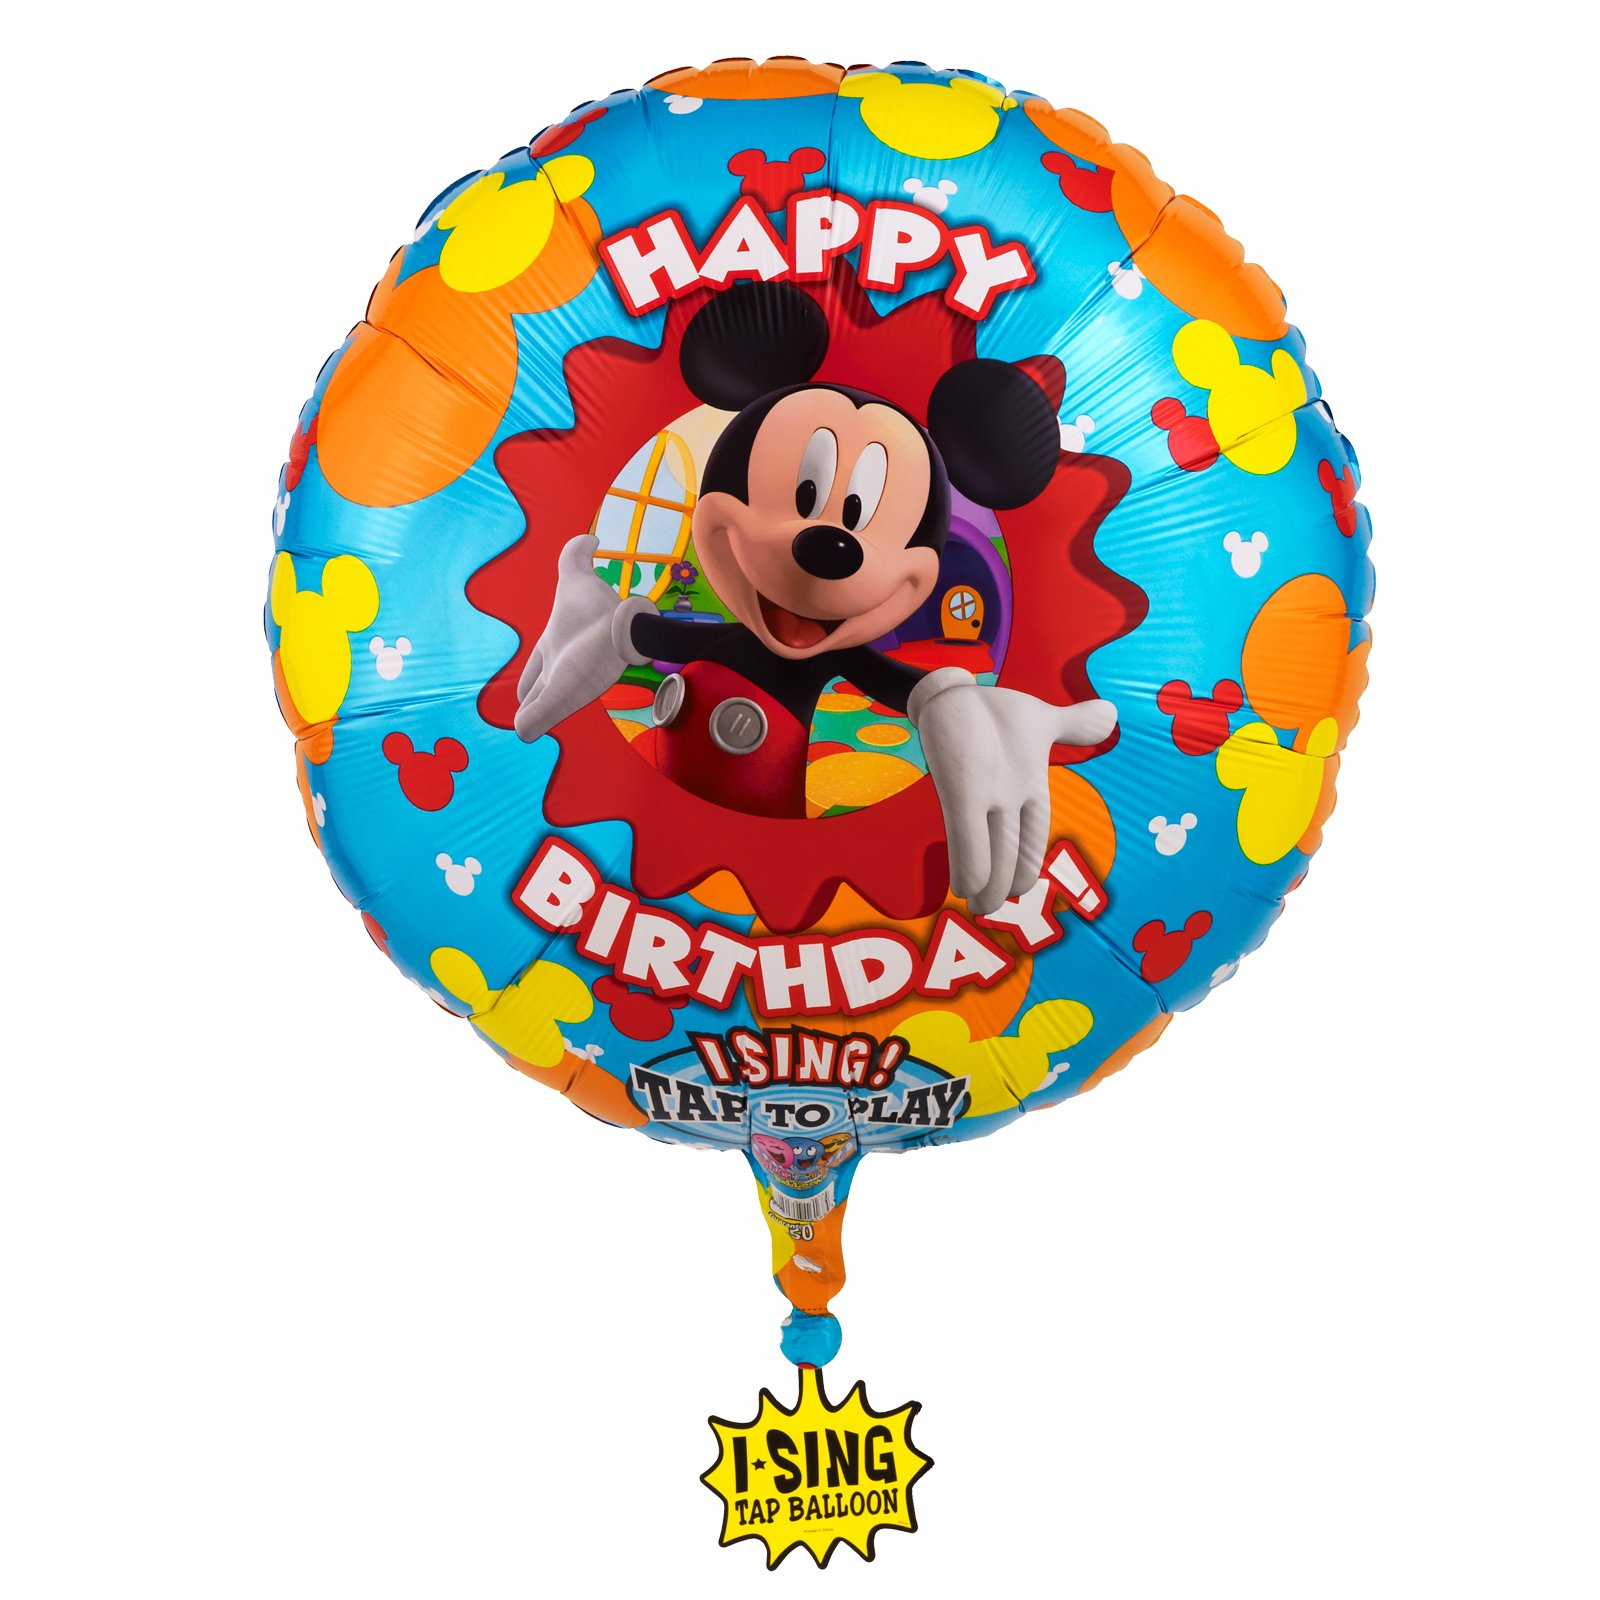 Mickey Mouse Cartoon 273 Hd Wallpapers In Cartoons   Imagesci Com